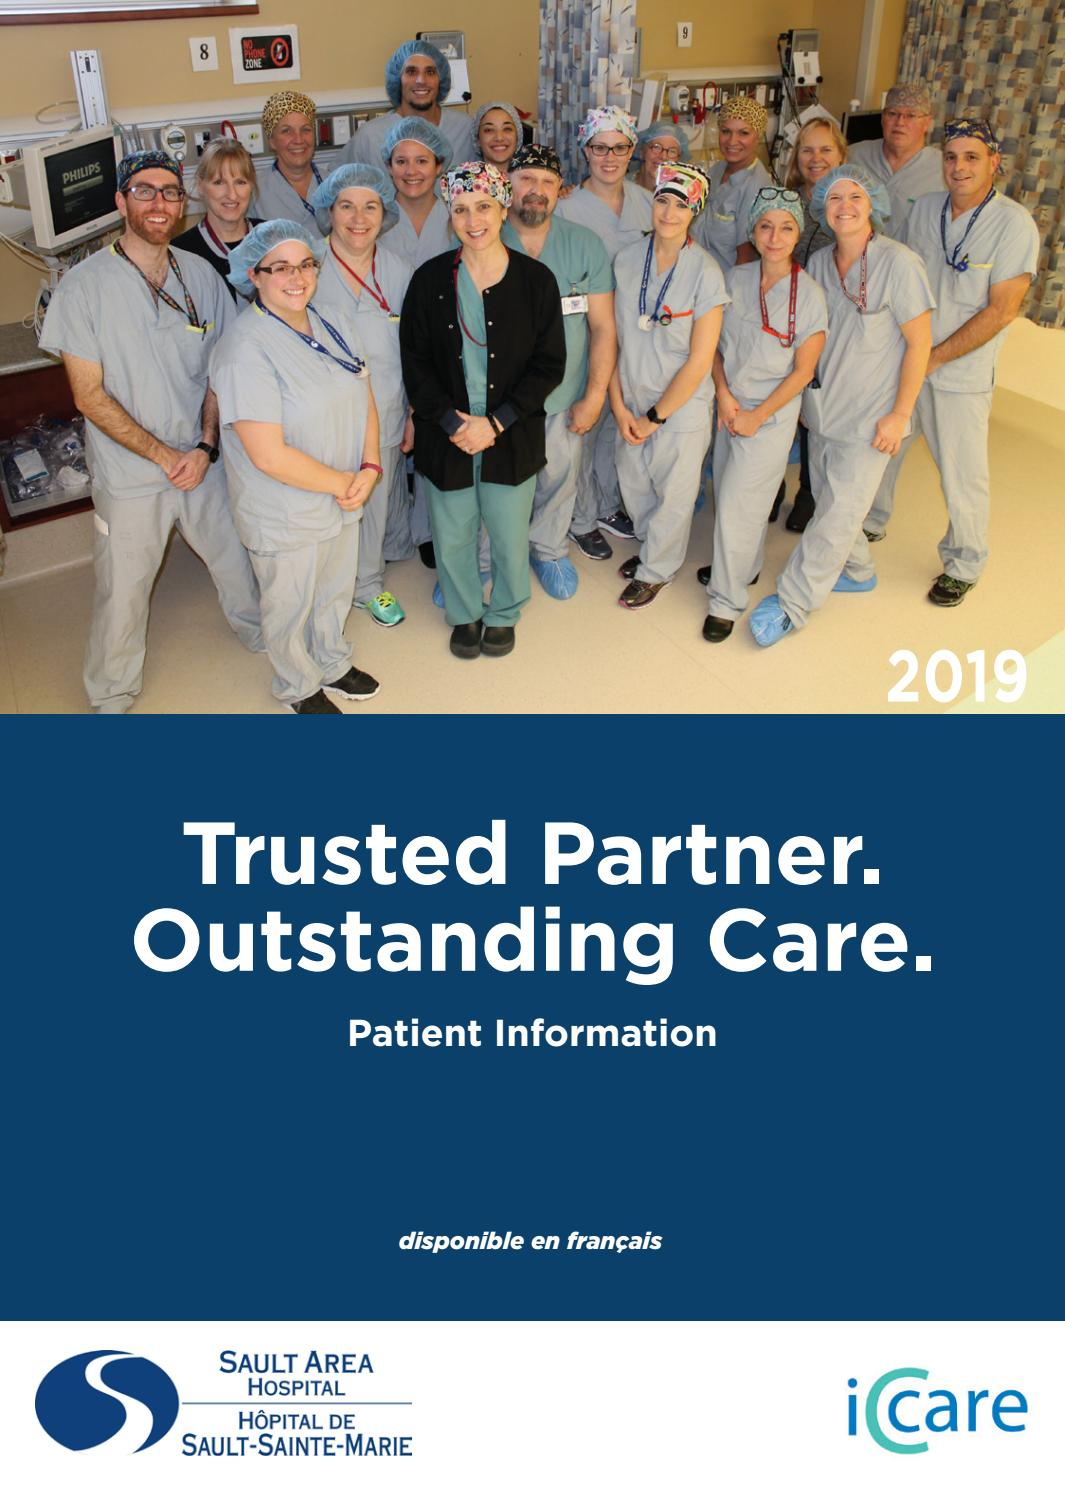 Sault Area Hospital: Trusted Partner  Outstanding Care  by